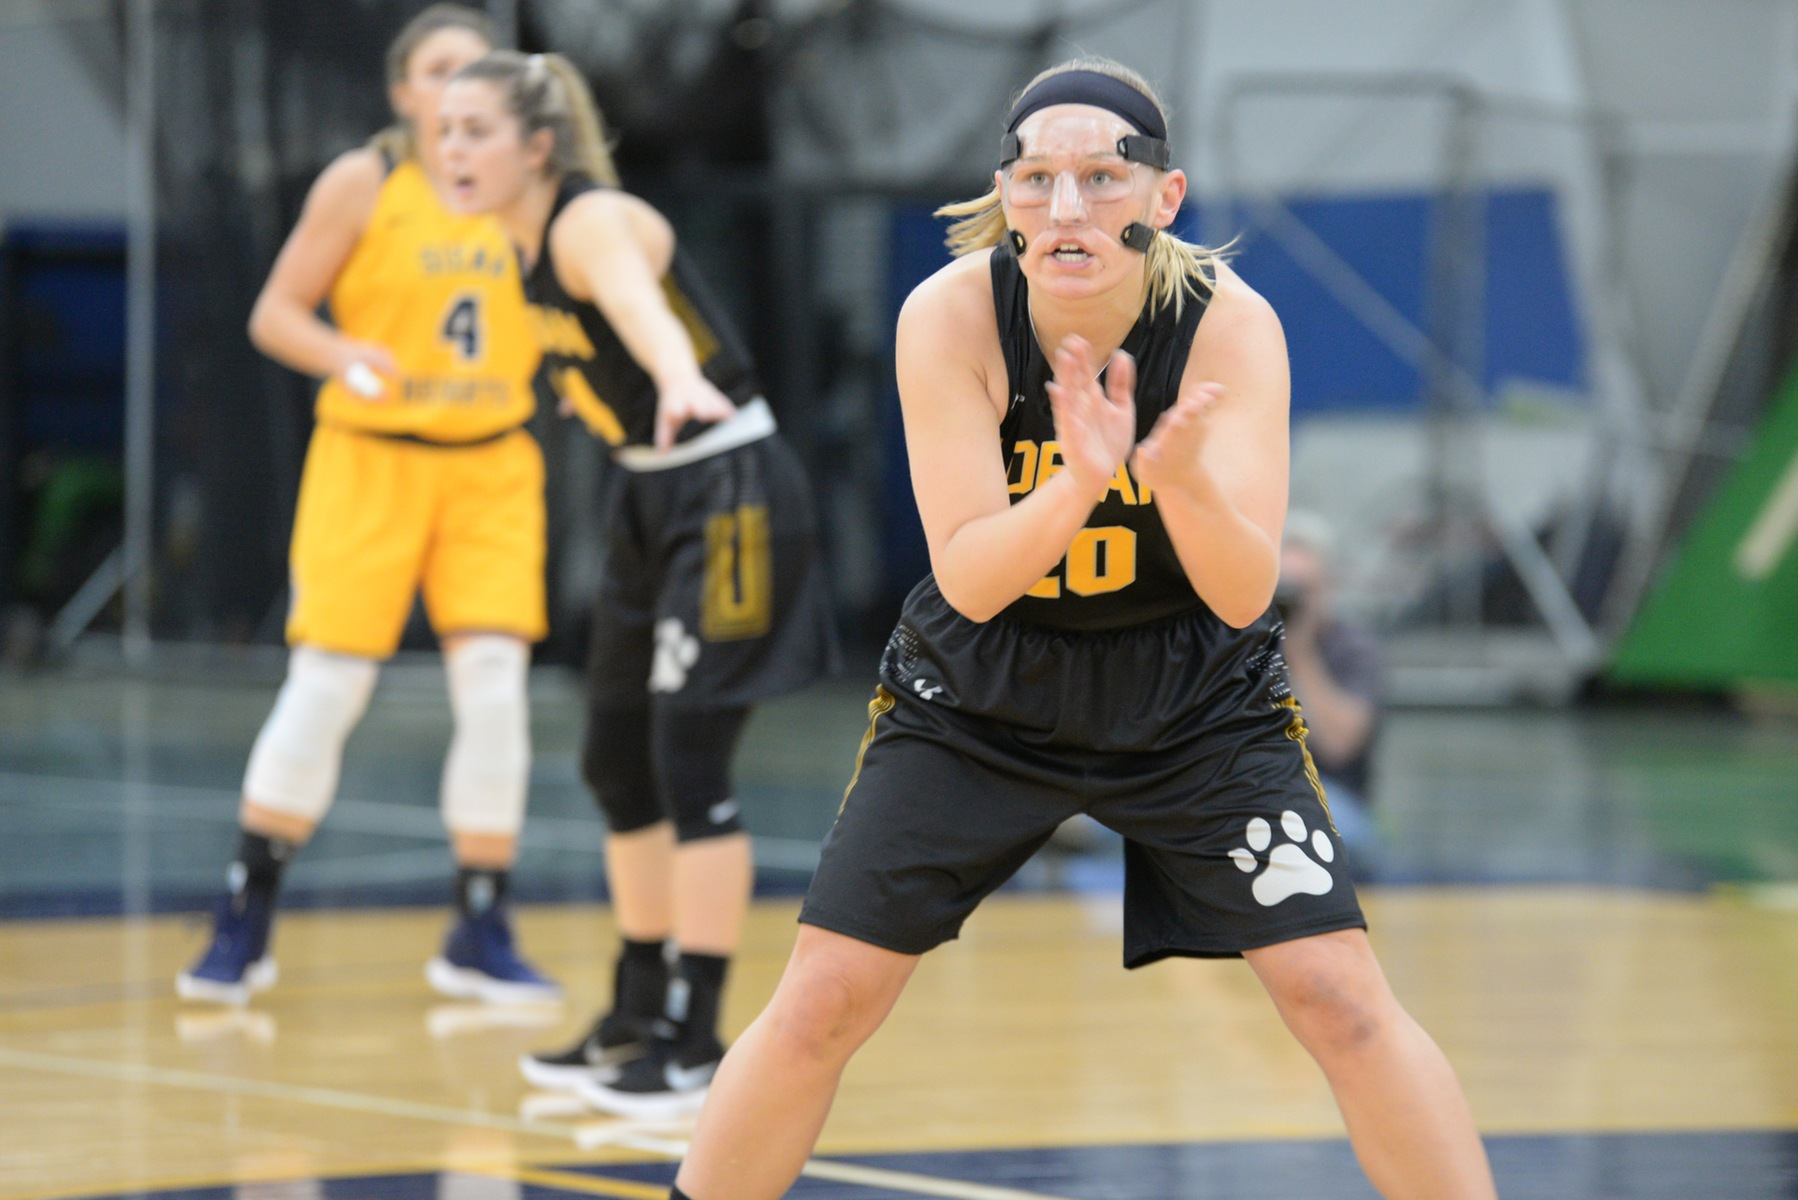 Emily Somerville scored a game-high 17 points at Siena Heights on Tuesday. (Action photo by Patrick Stewart)